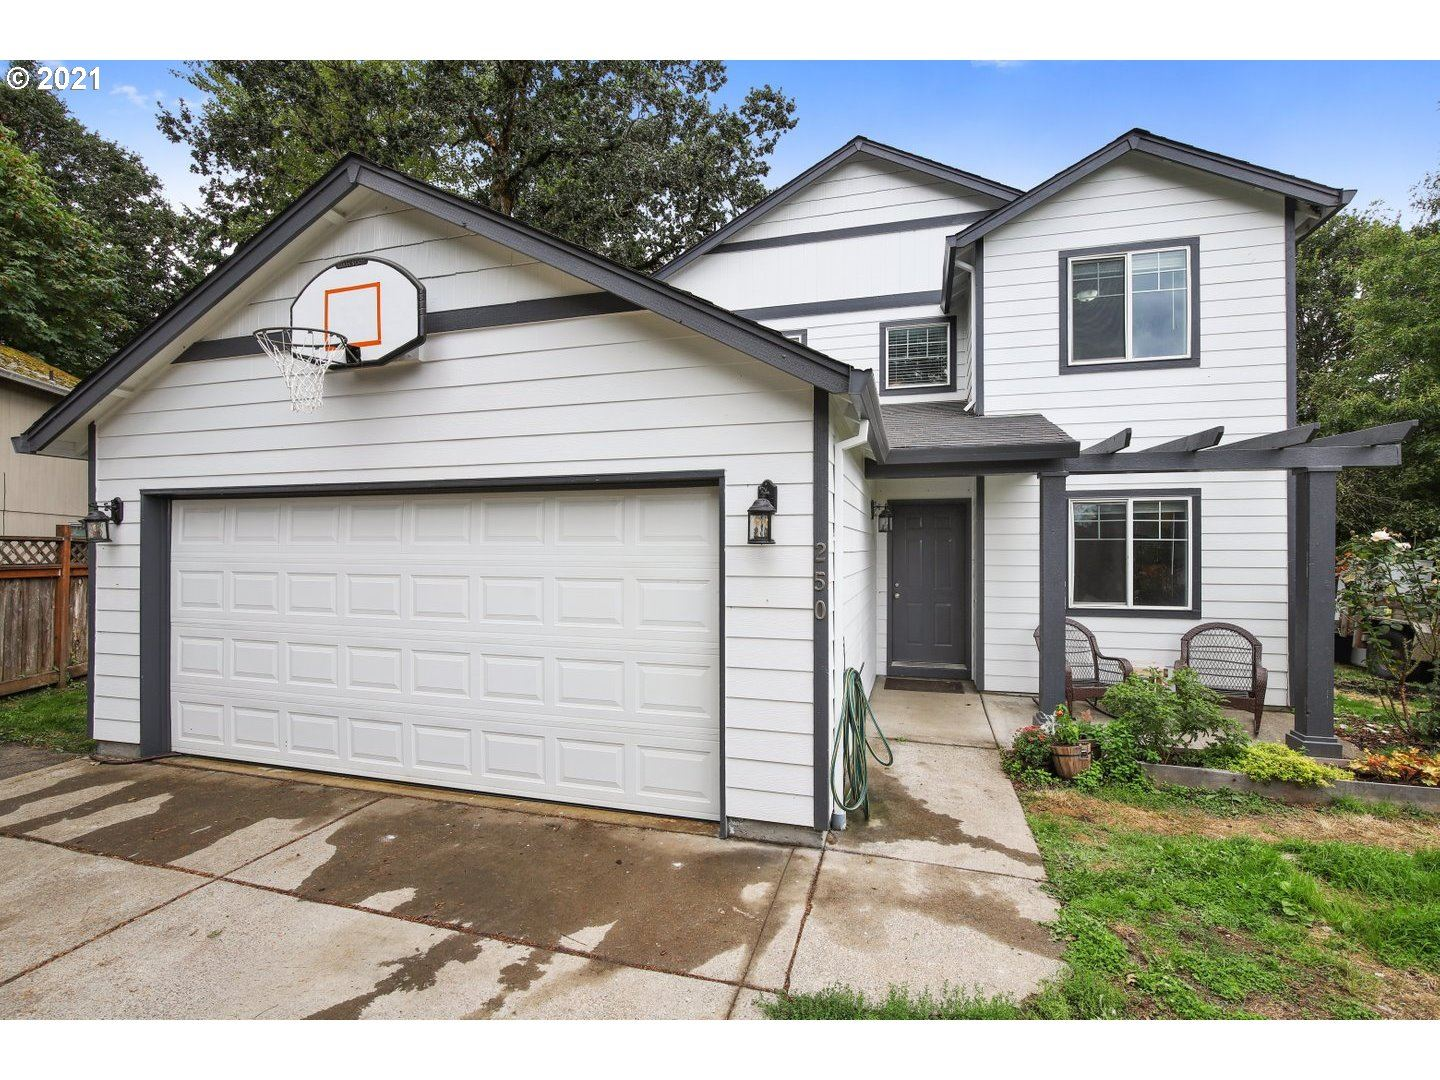 Photo of 250 SE EDWARDS DR, Dundee, OR 97115 (MLS # 21539551)